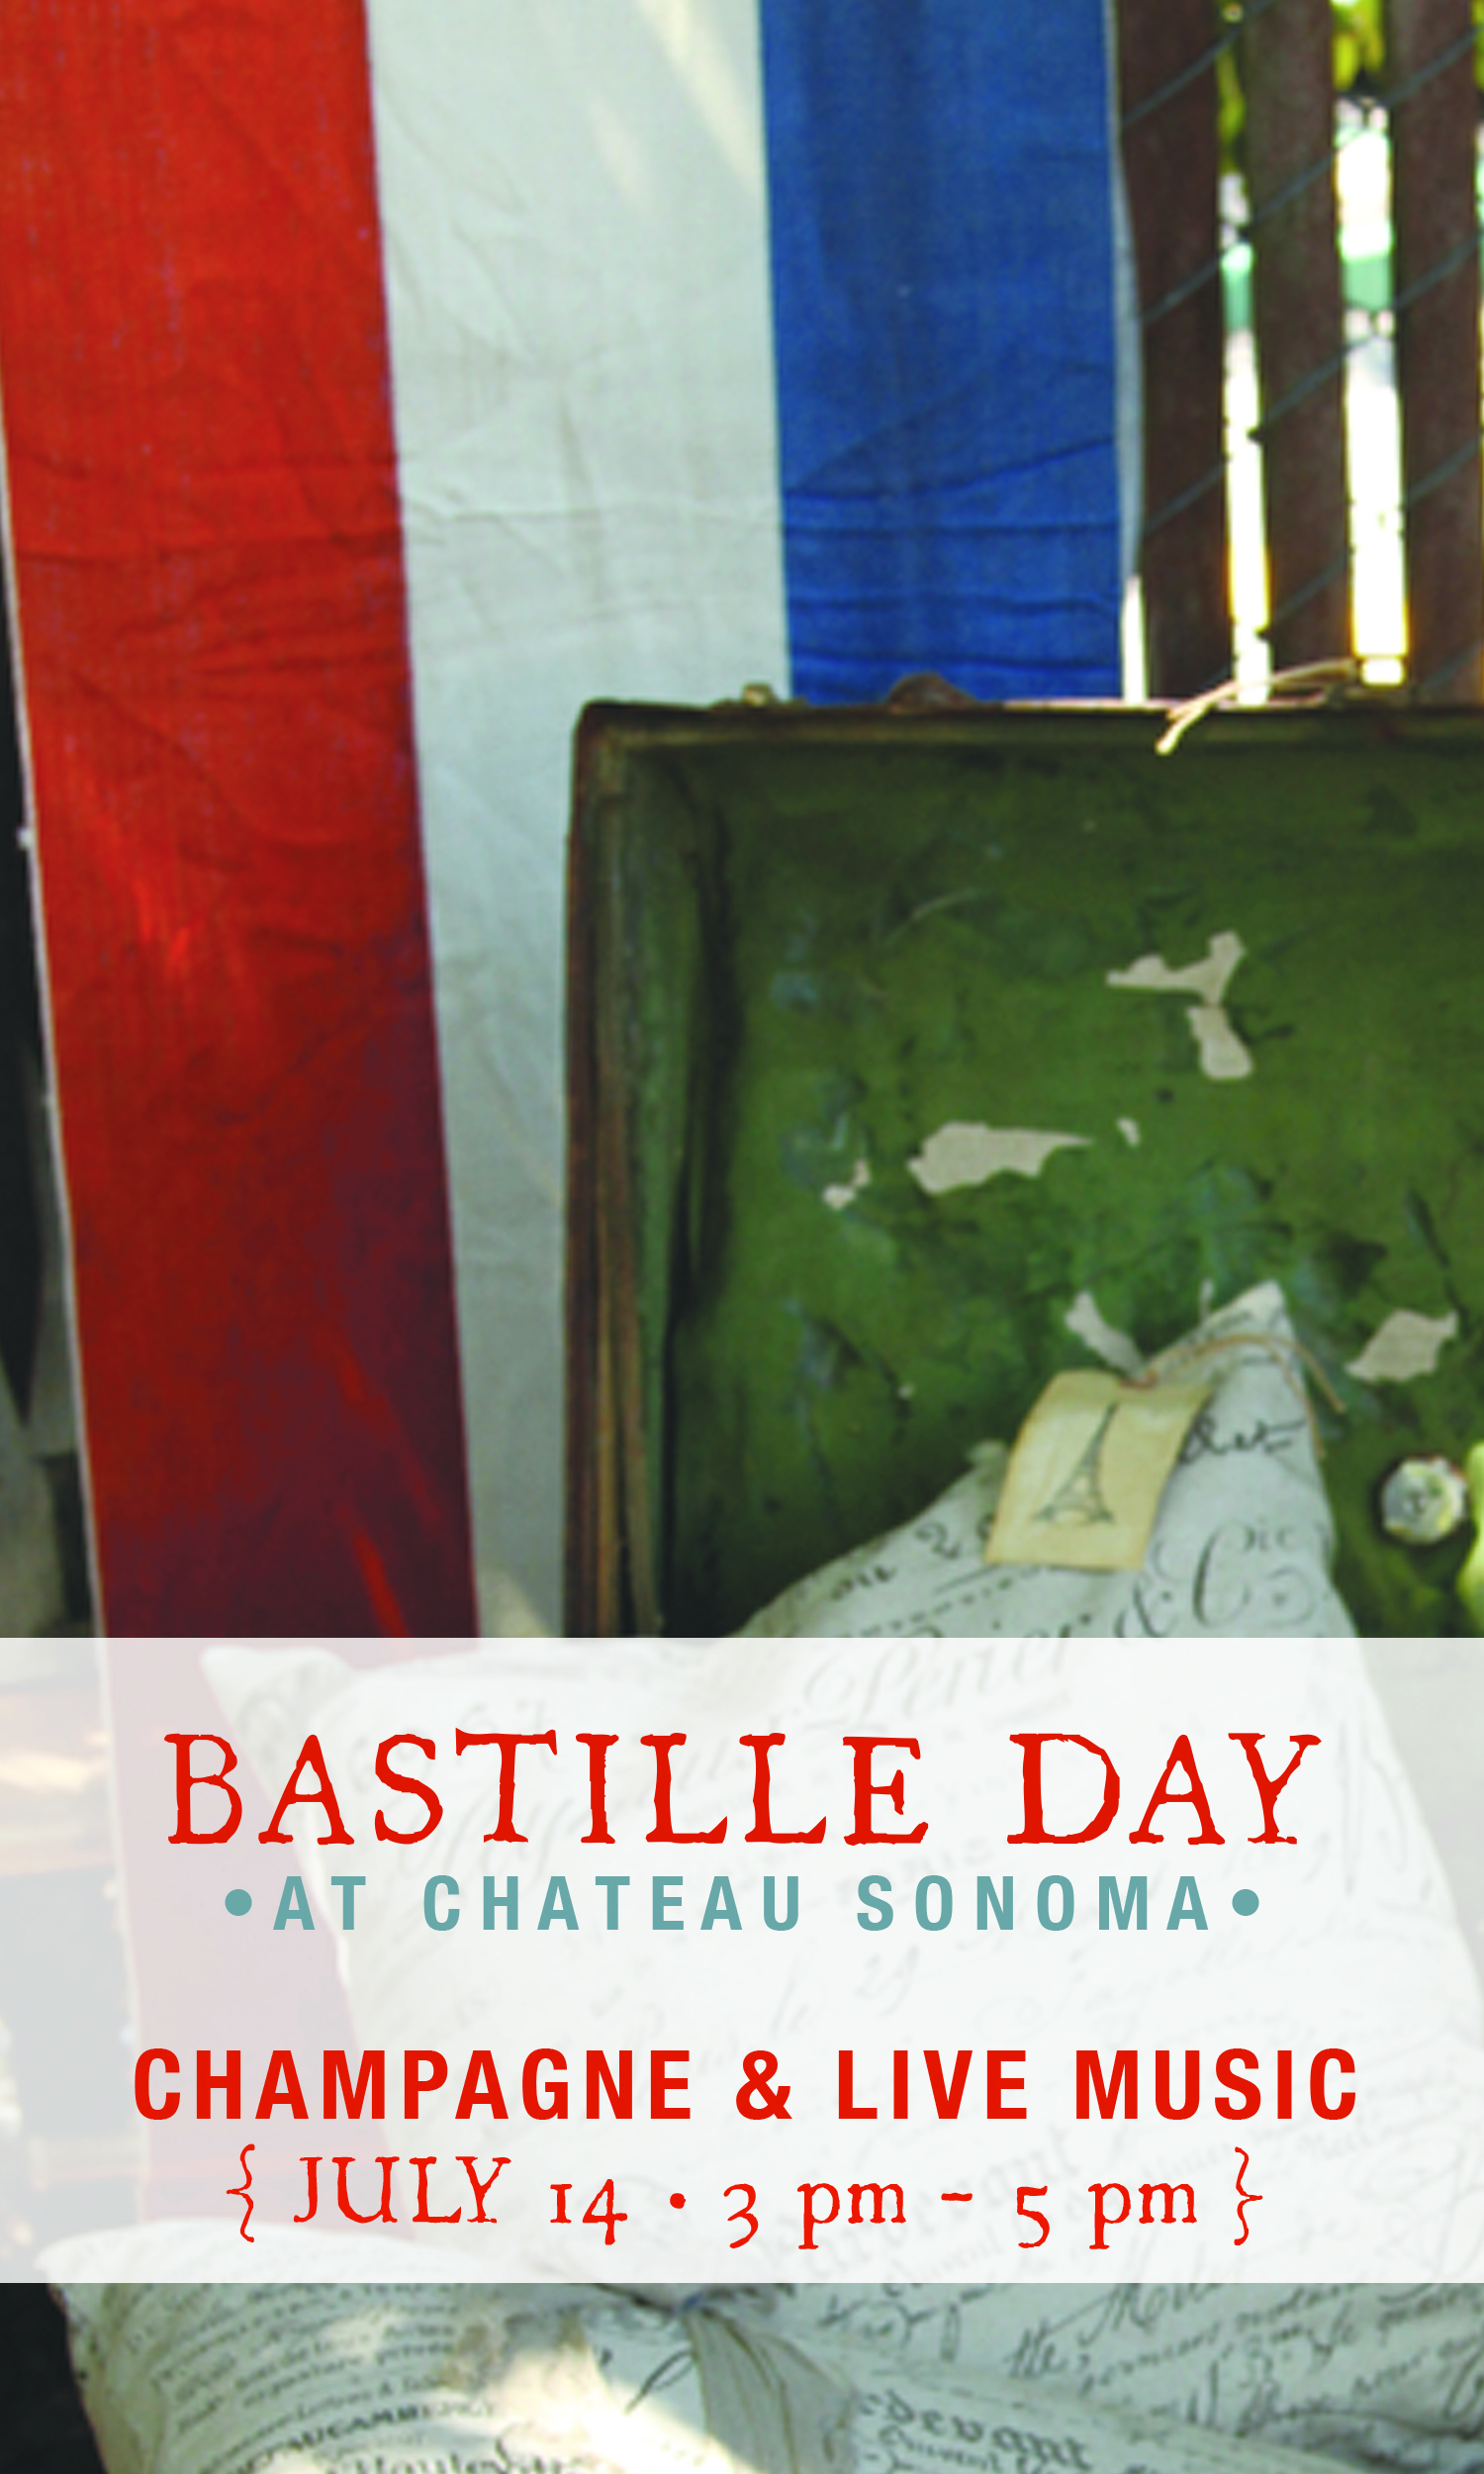 Bastille Day at Chateau Sonoma